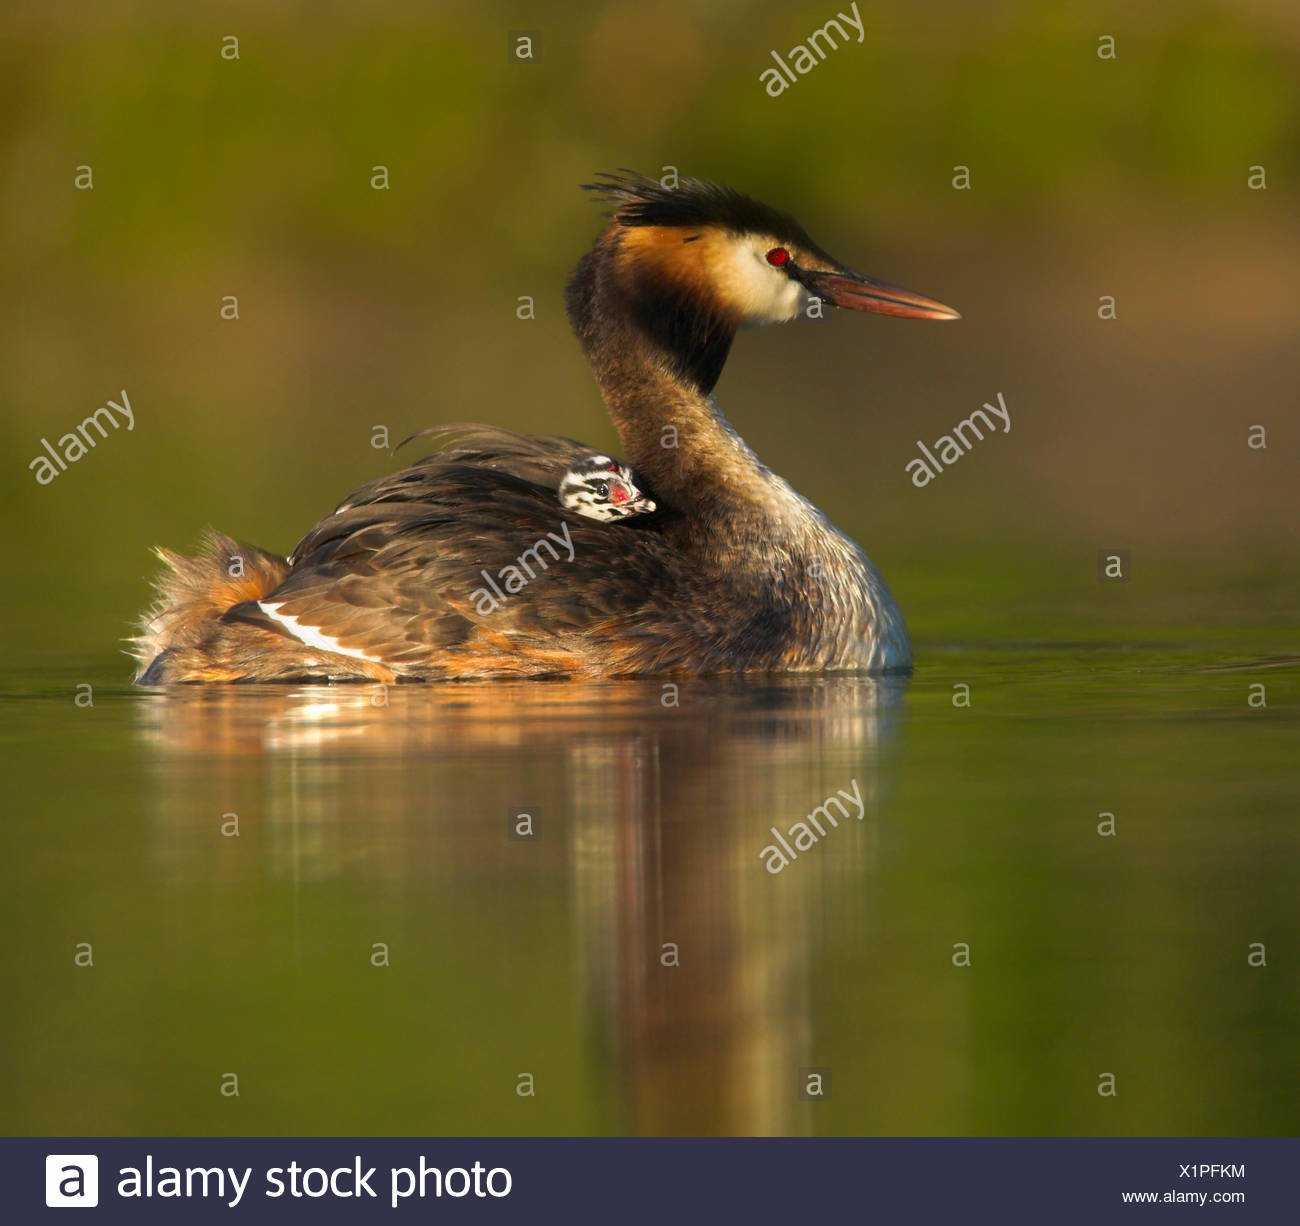 Great crested grebe (Podiceps cristatus) chick on mother's back, UK. - Stock Image